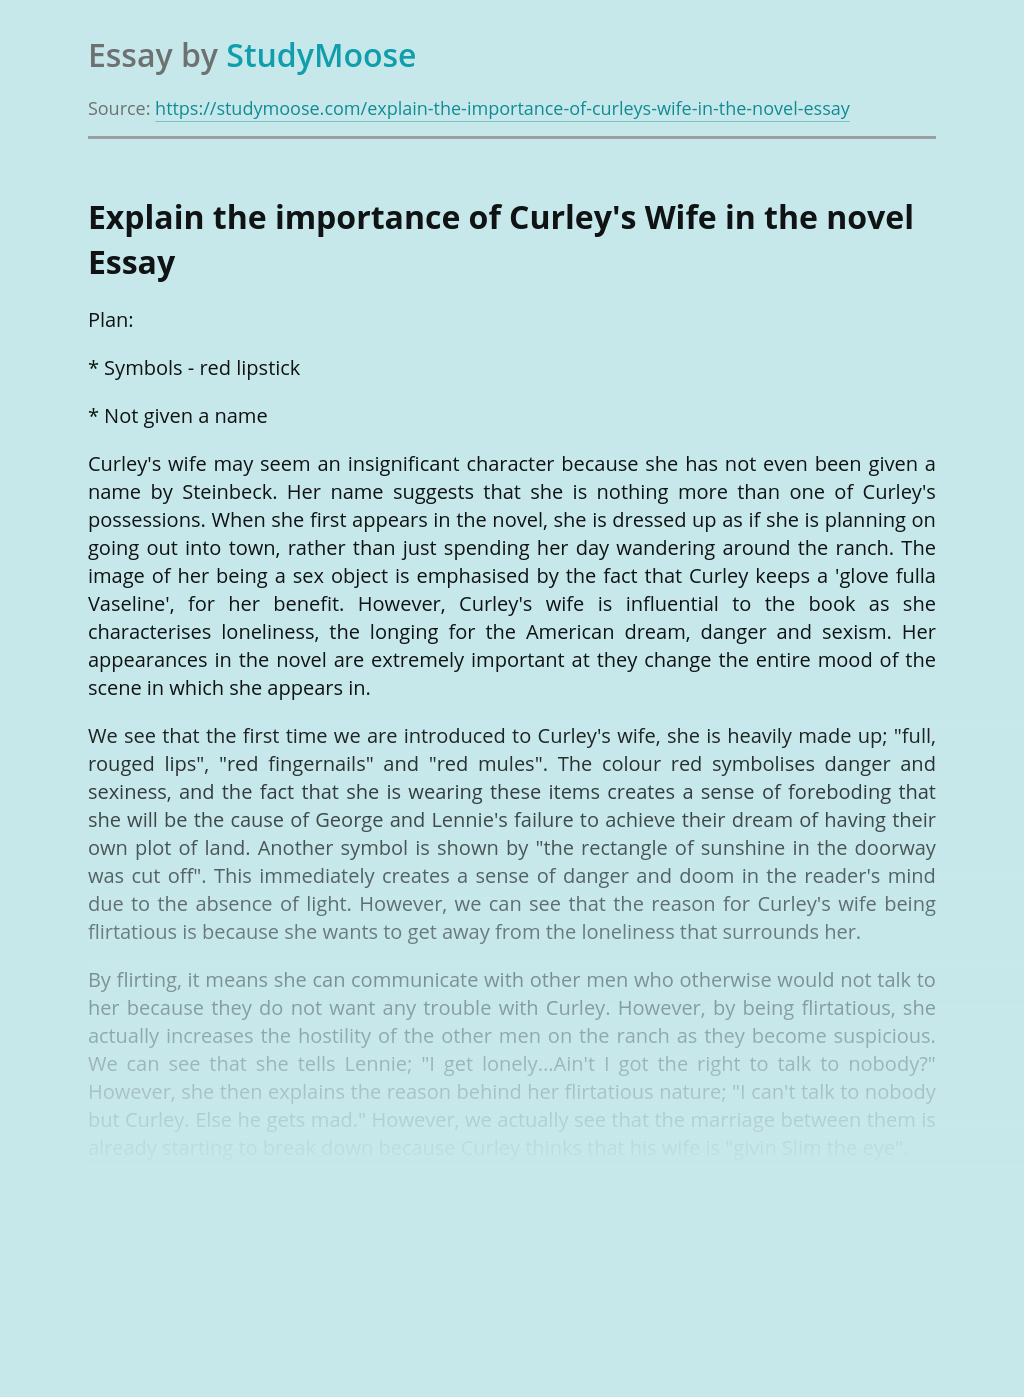 Explain the importance of Curley's Wife in the novel